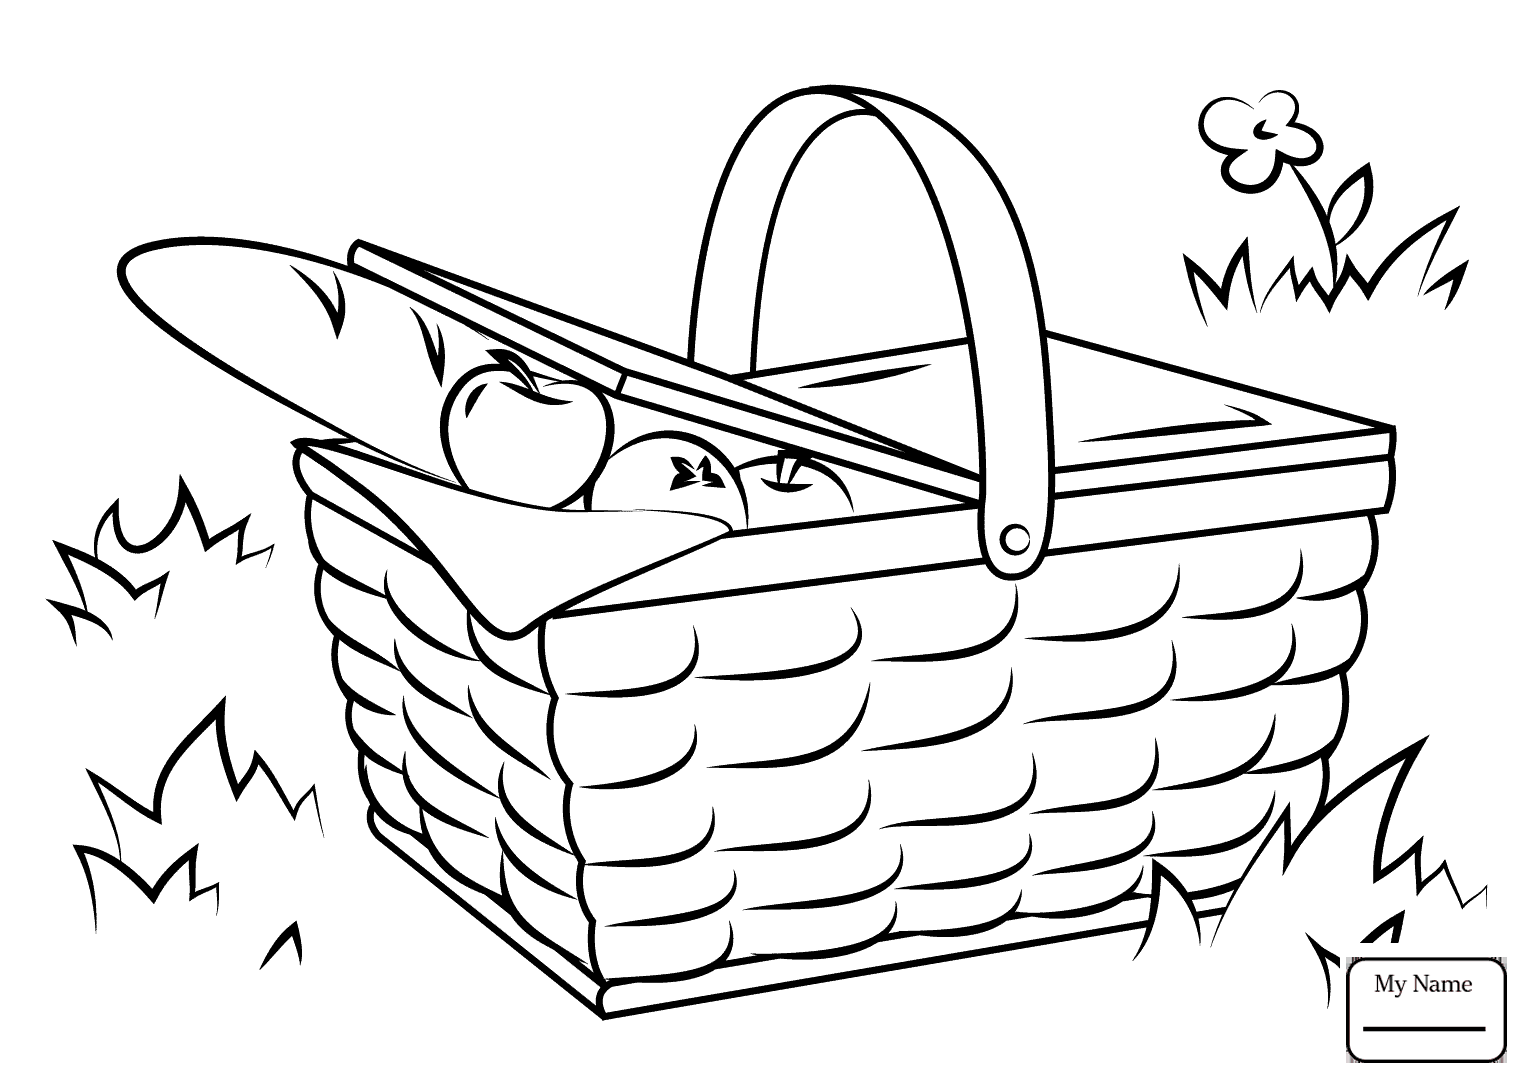 picnic table coloring page picnic table coloring page at getcoloringscom free page picnic coloring table